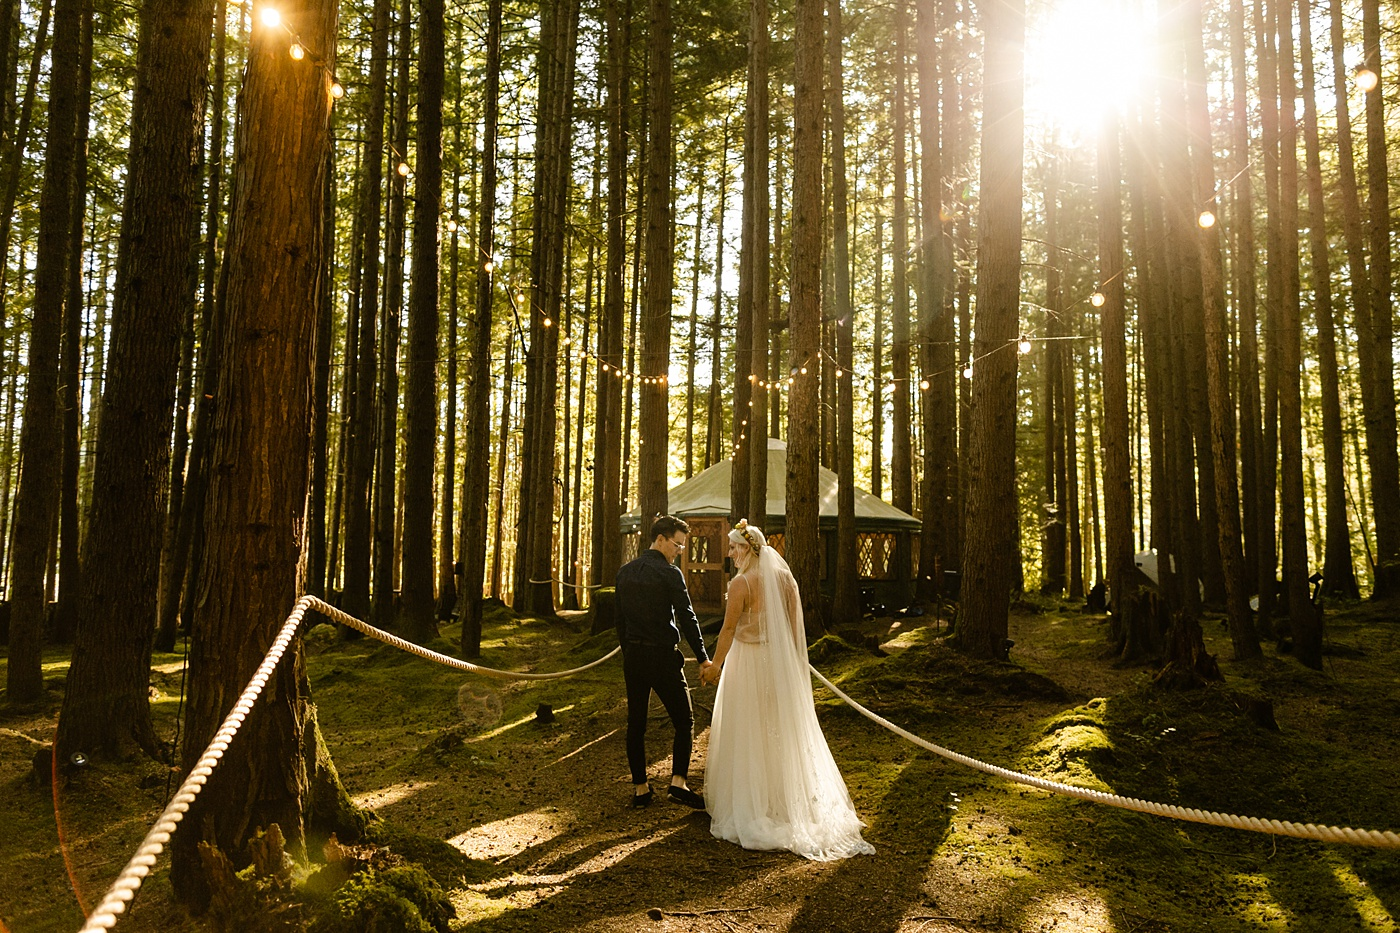 twinkle lights Emerald Forest Engagement Photographer Treehouse Wedding Venue PNW